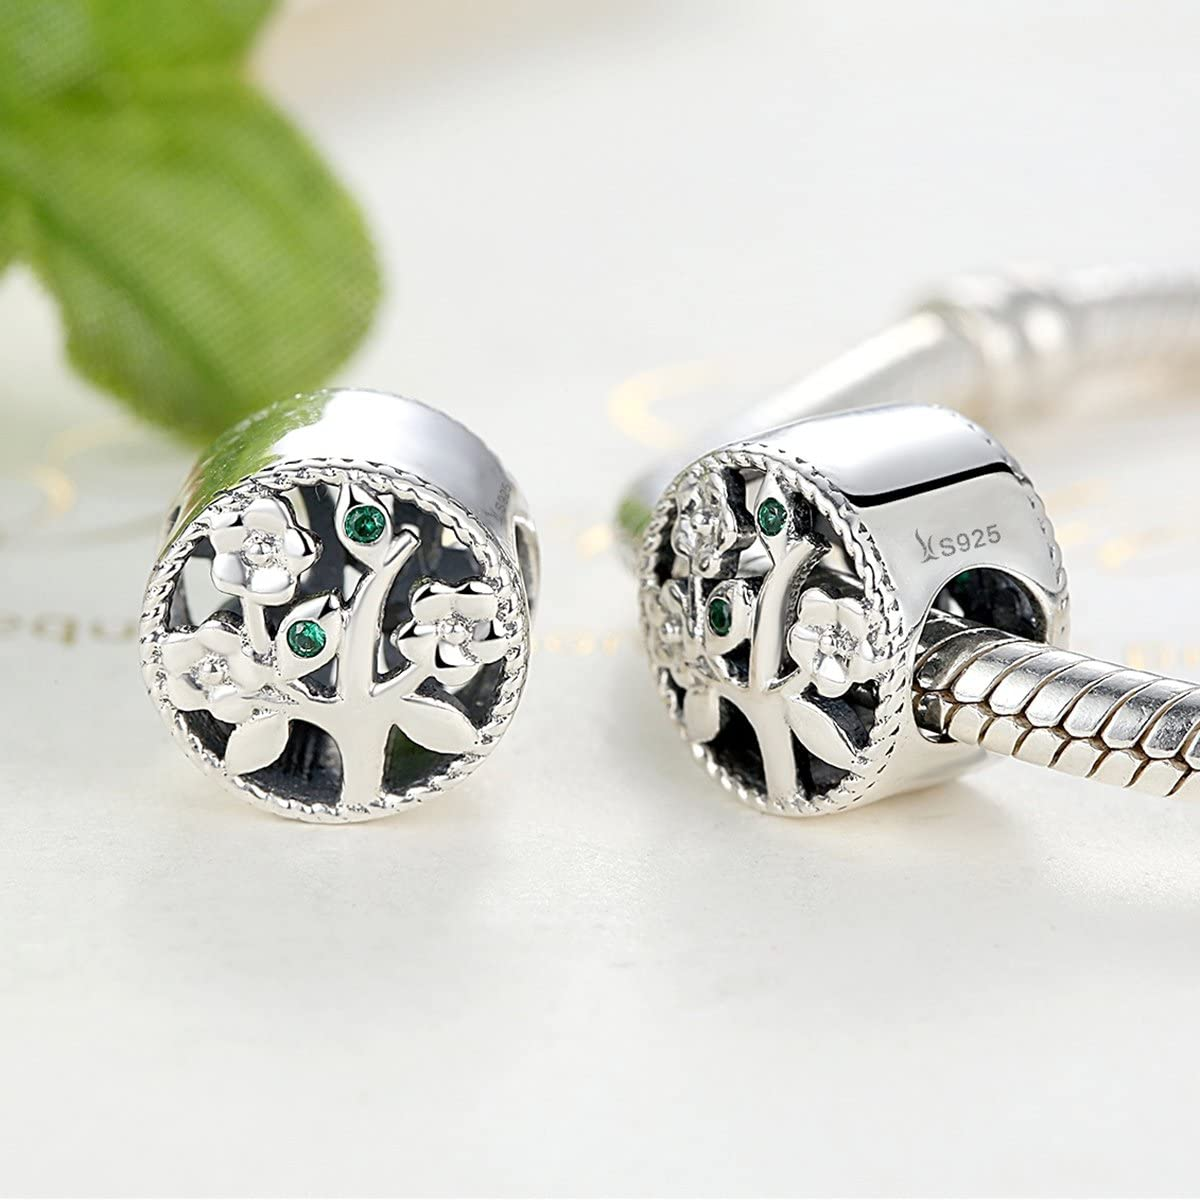 NINGAN Genuine Life Tree 925 Sterling Silver Bead Charms Fits European Bracelets Compatible